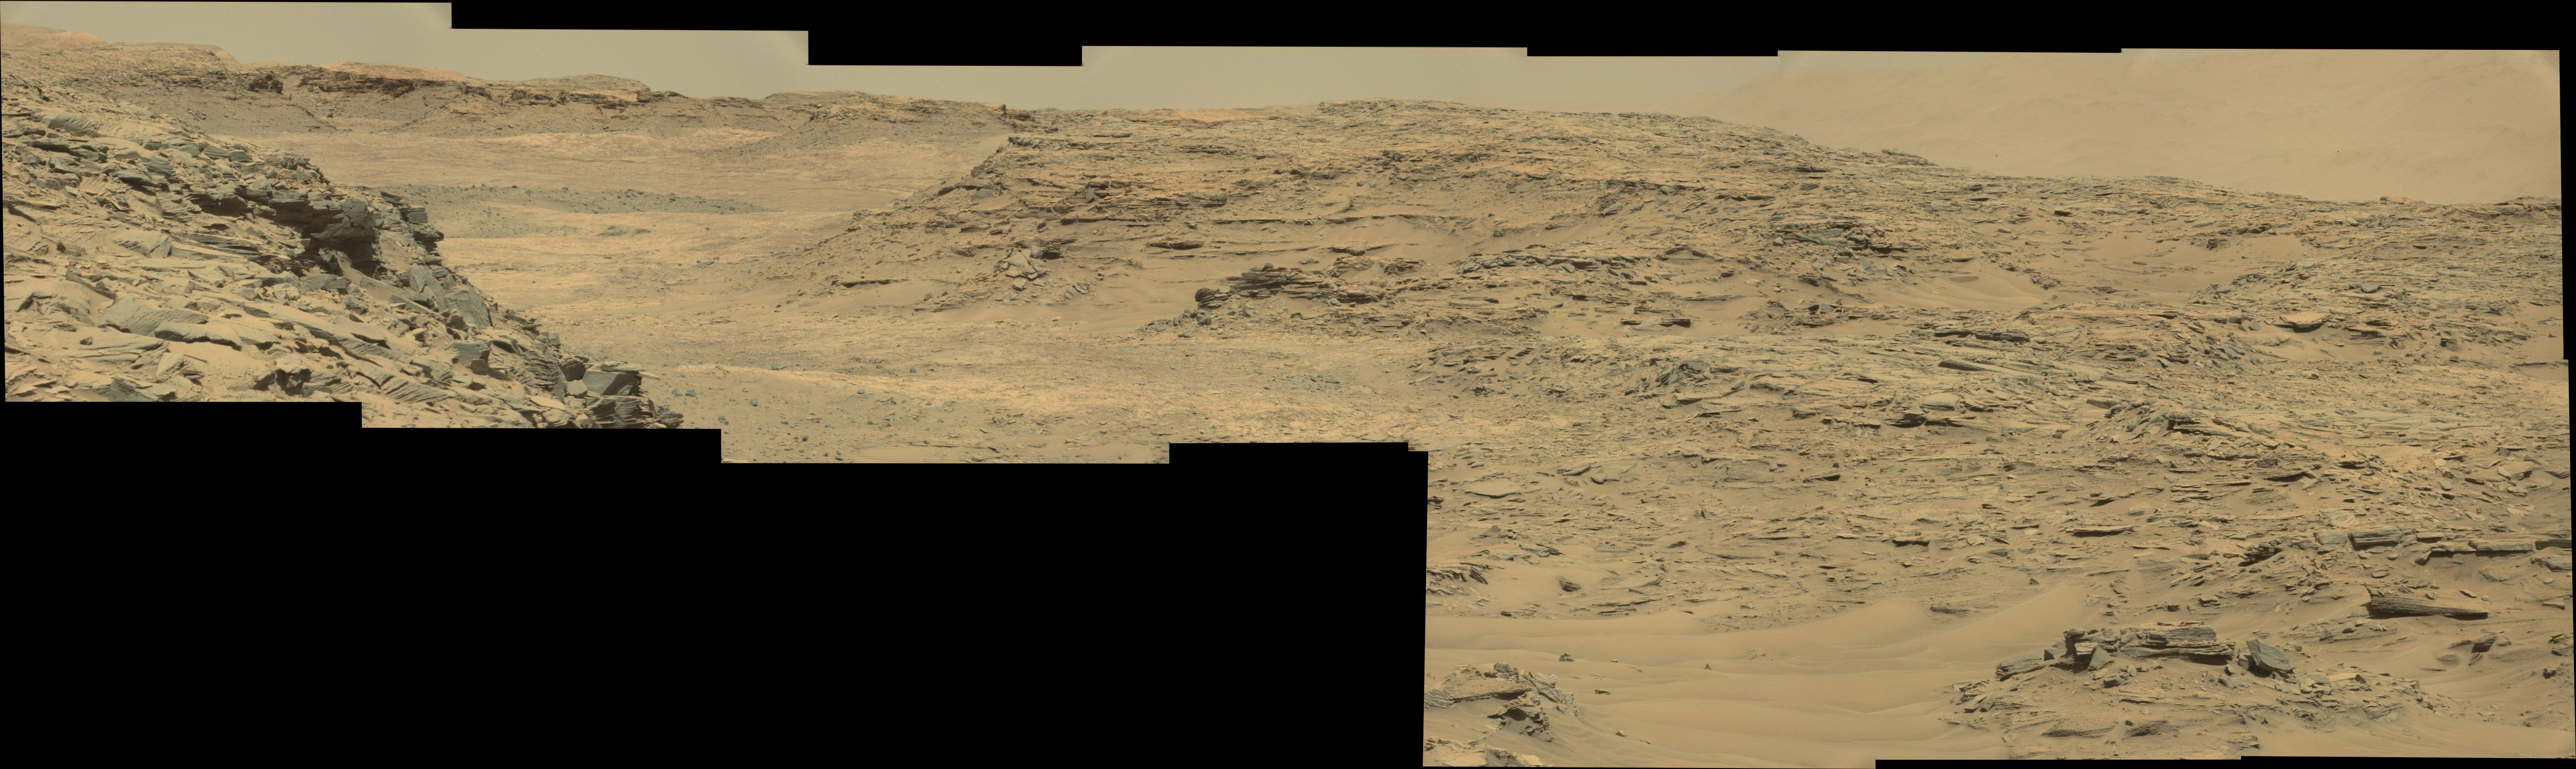 panoramic curiosity rover view 1 - sol 1303 - was life on mars